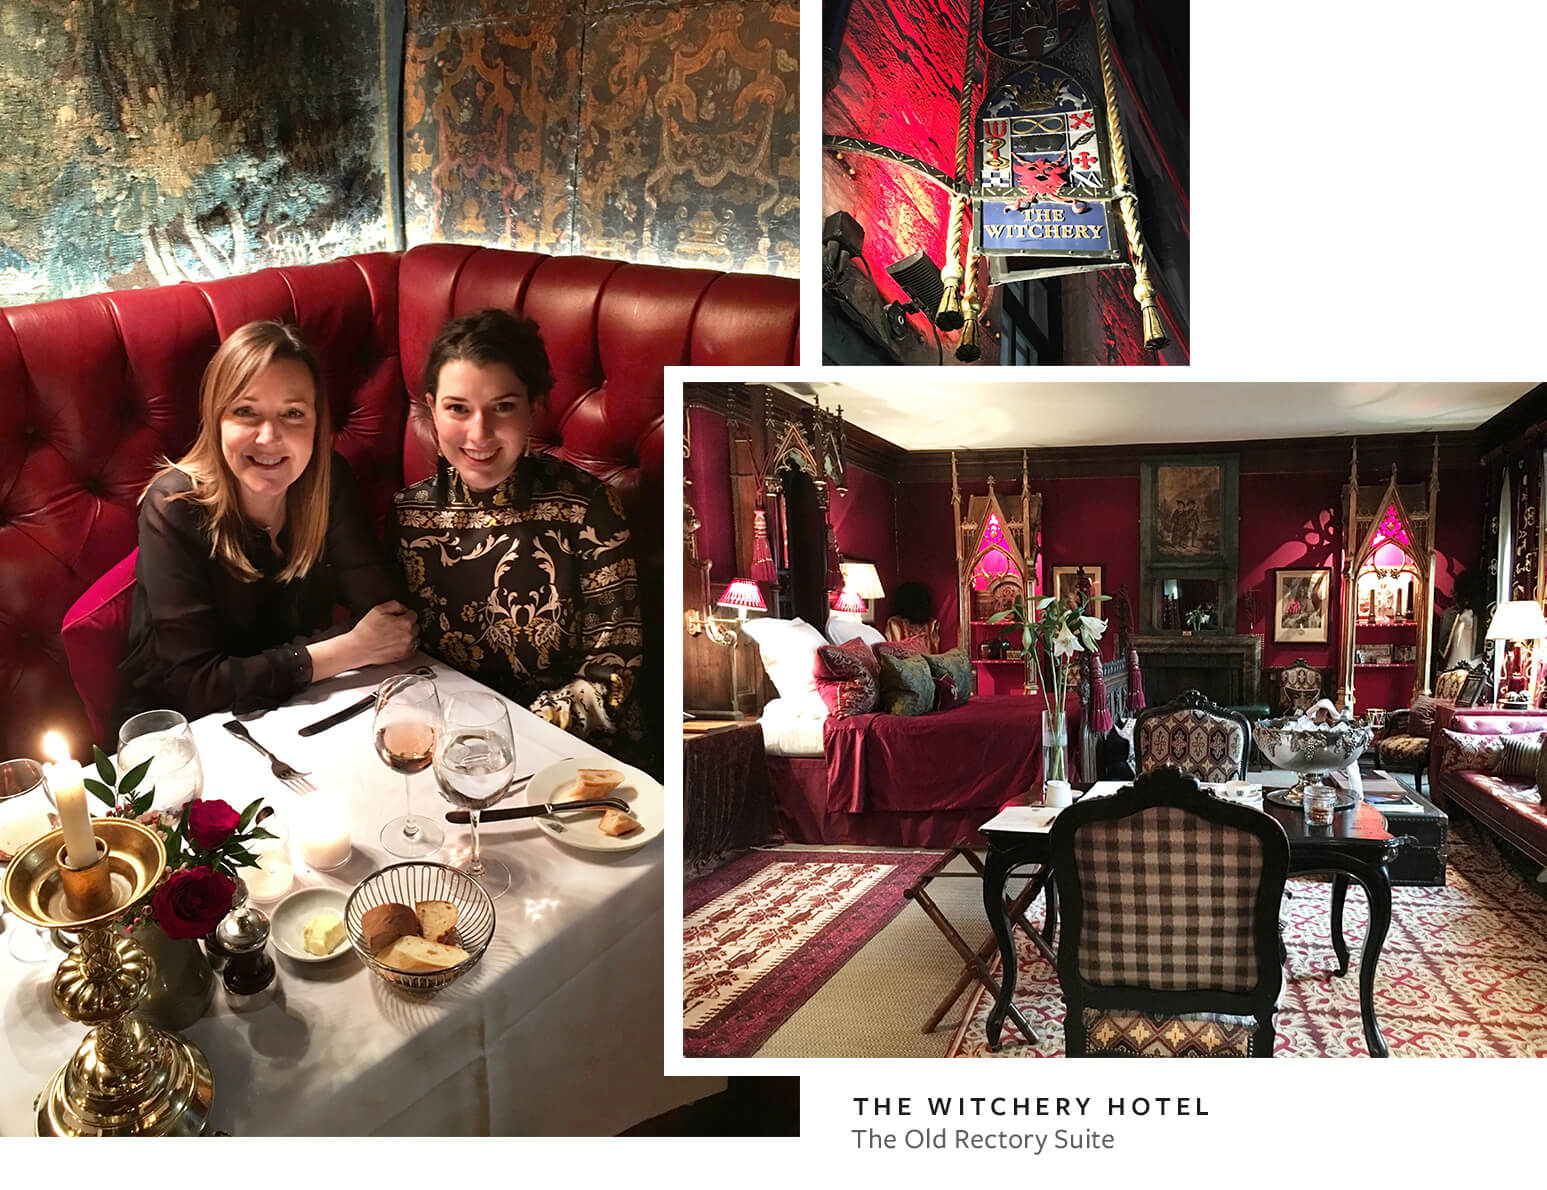 The Witchery Restaurant and Suites, Edinburgh